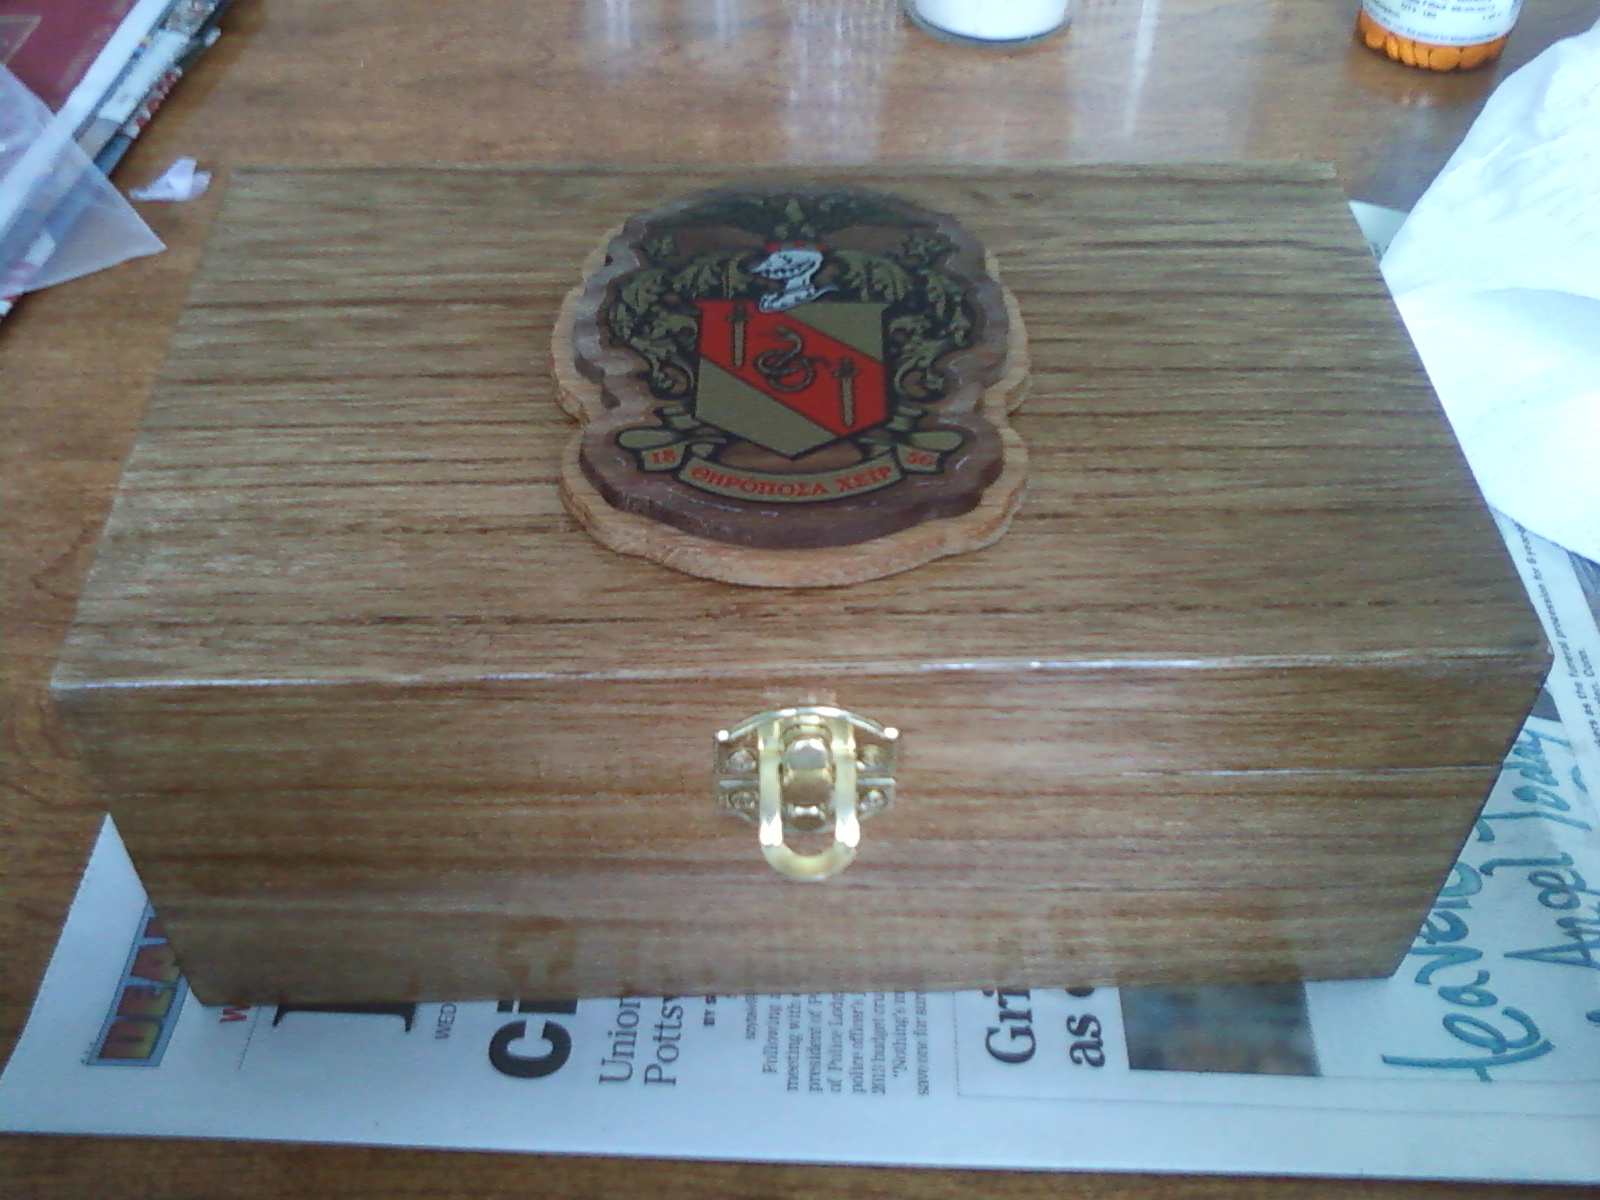 Hand crafting a Theta Chi president's box as part of your First Lady duties. TSM.